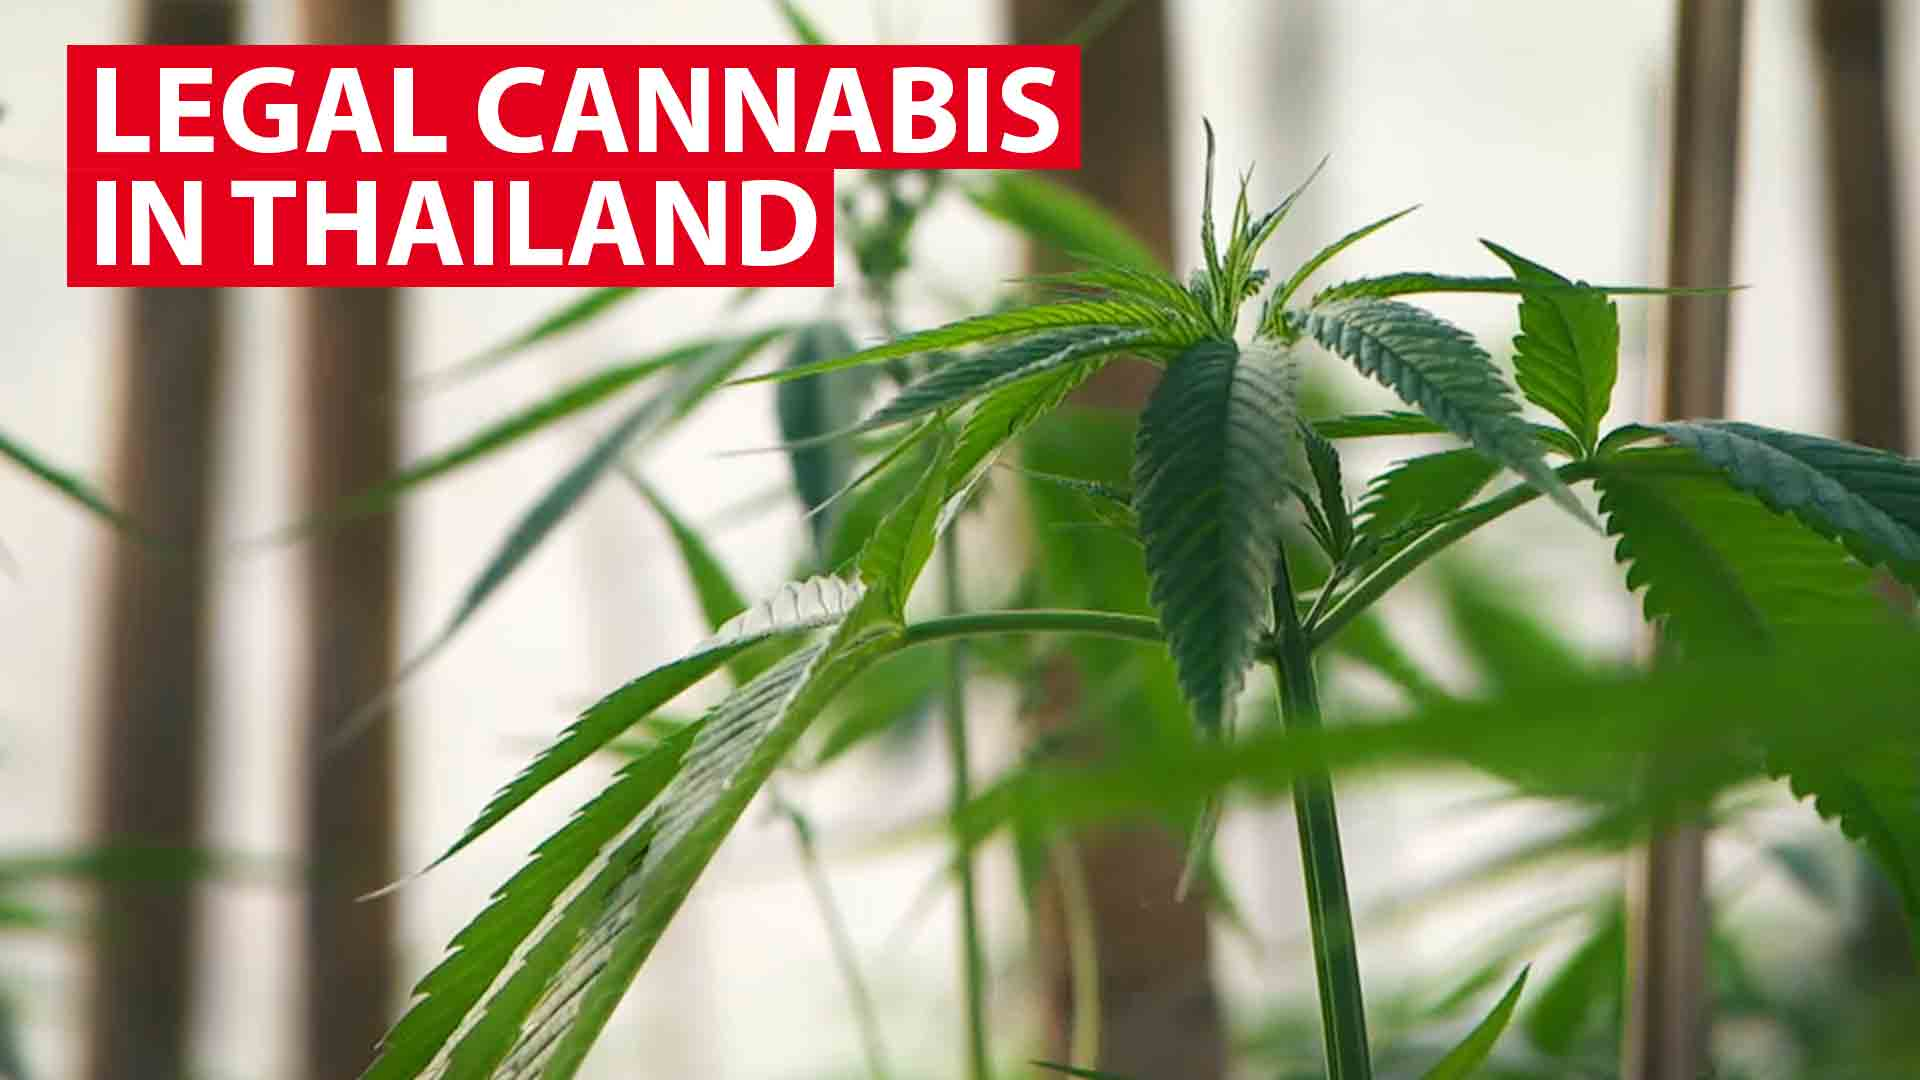 Inside Thailand's first legalised cannabis plantation